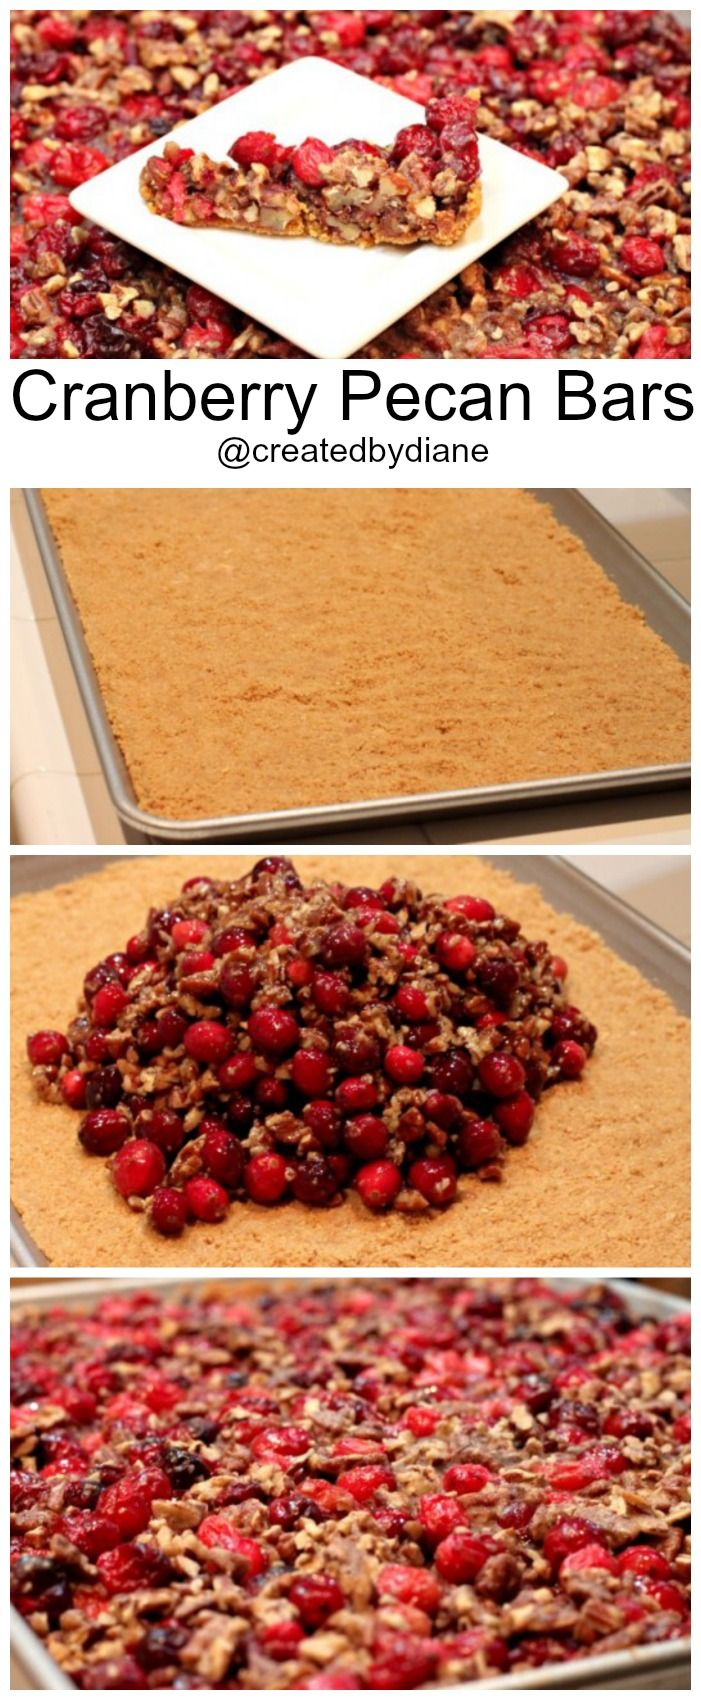 Cranberry Pecan Bars Thanksgiving